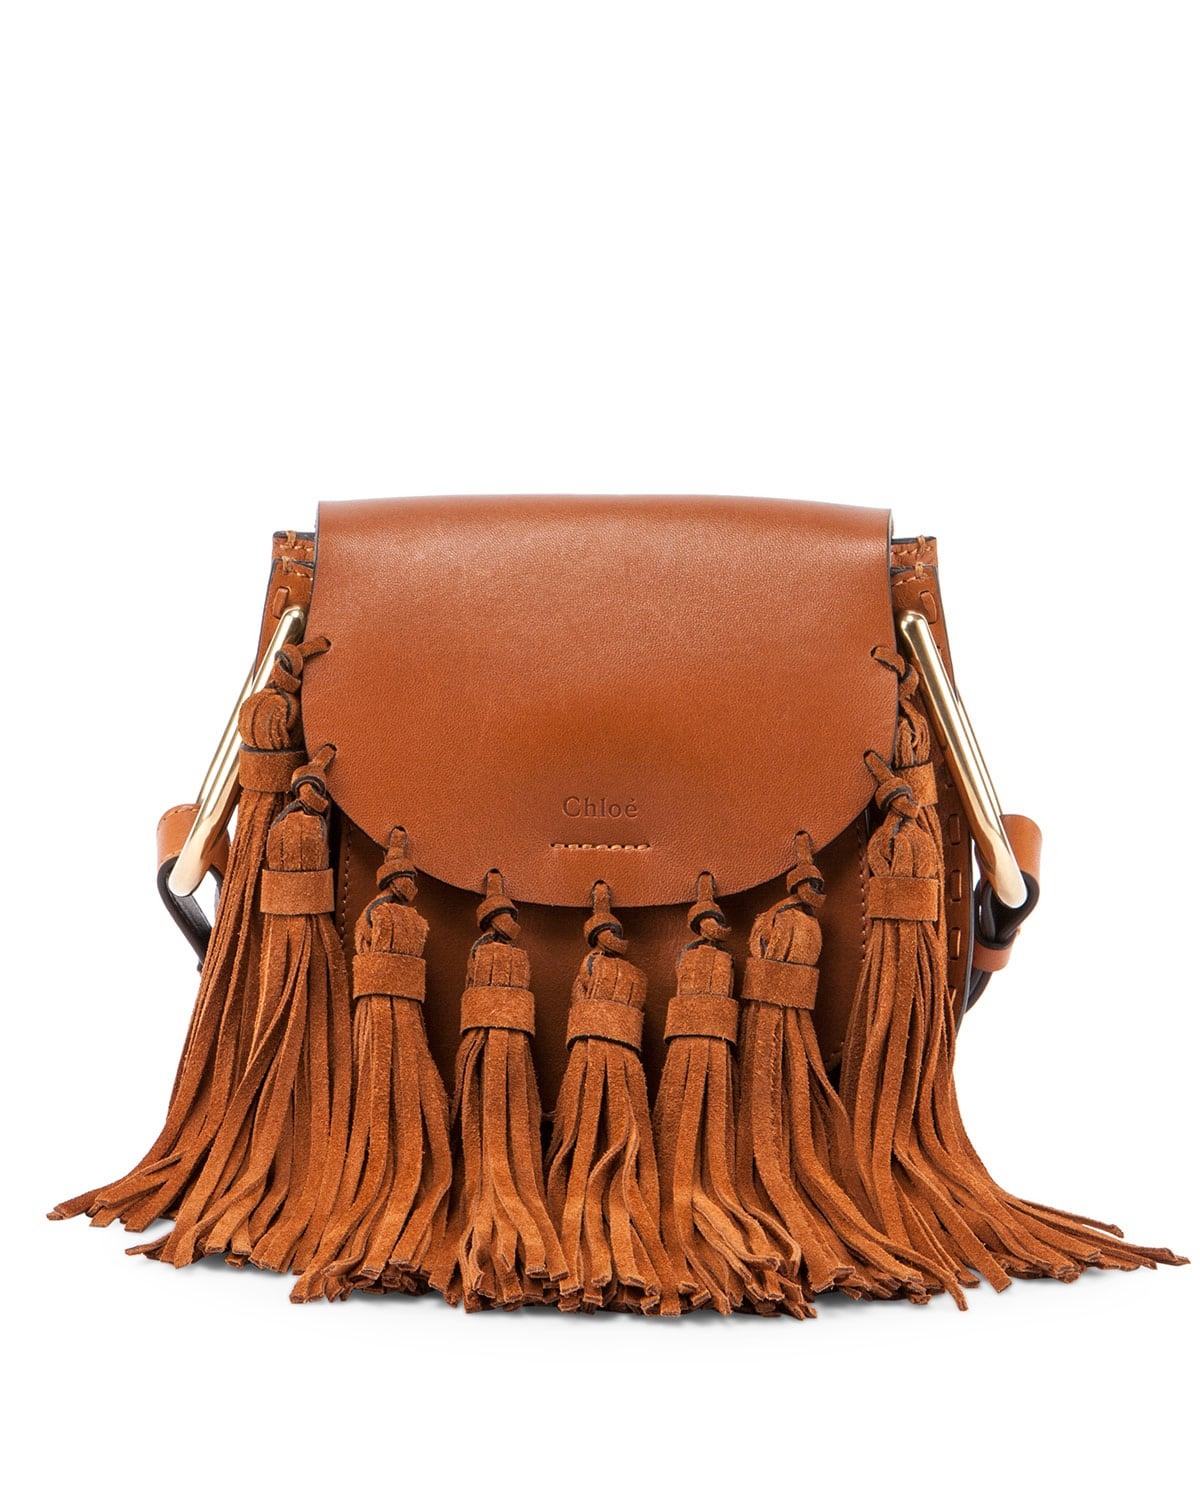 chloe replica bag - Chloe Fall / Winter 2015 Bag Collection Featuring Fringe Bags ...